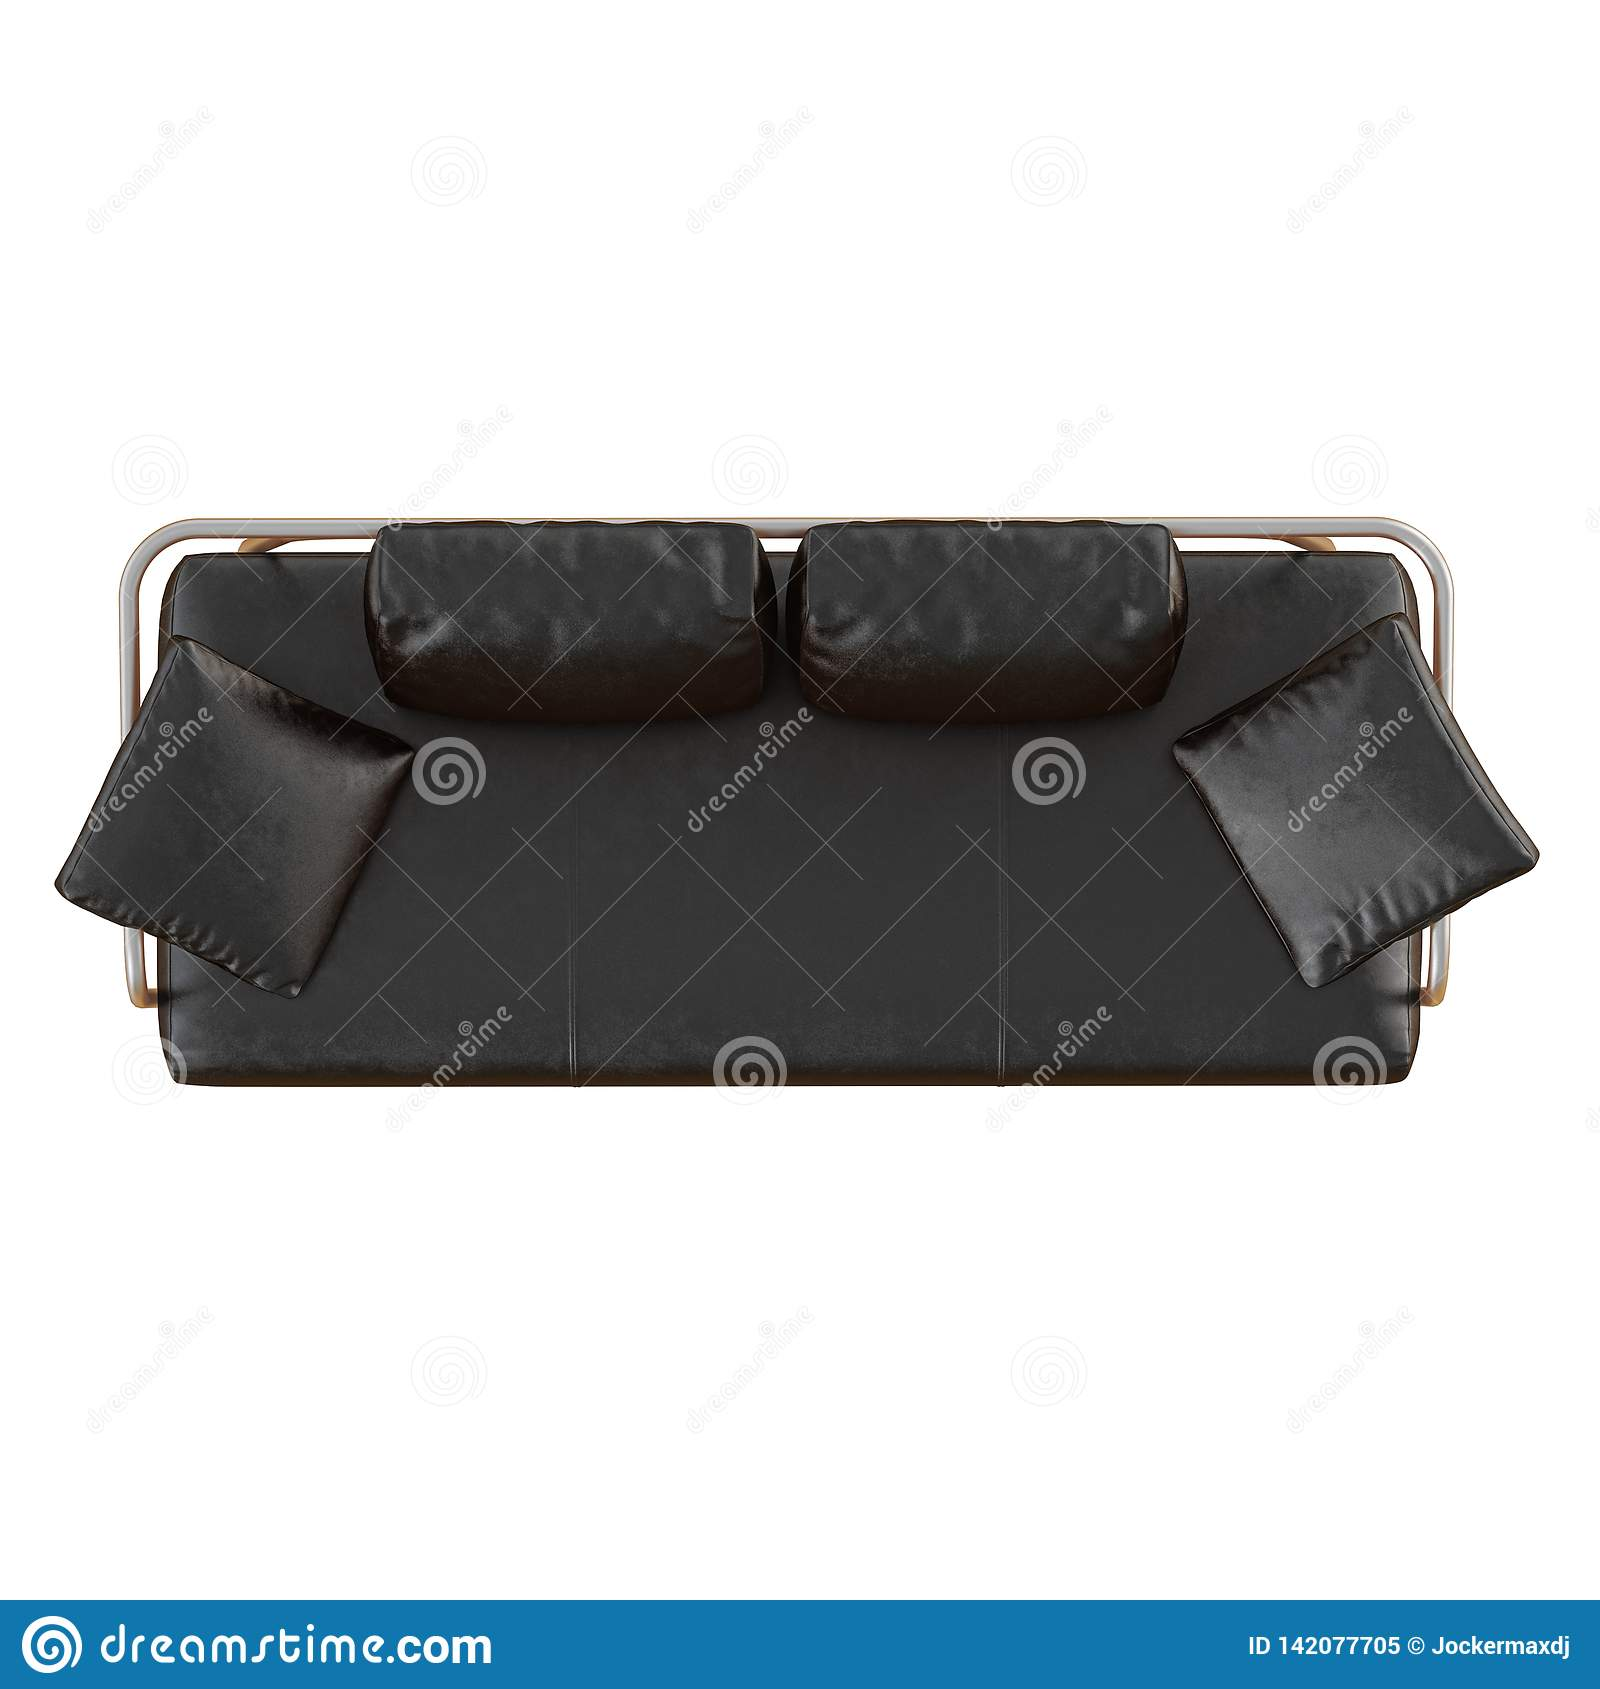 Pleasing Black Leather Sofa With Pillows On A White Background 3D Machost Co Dining Chair Design Ideas Machostcouk